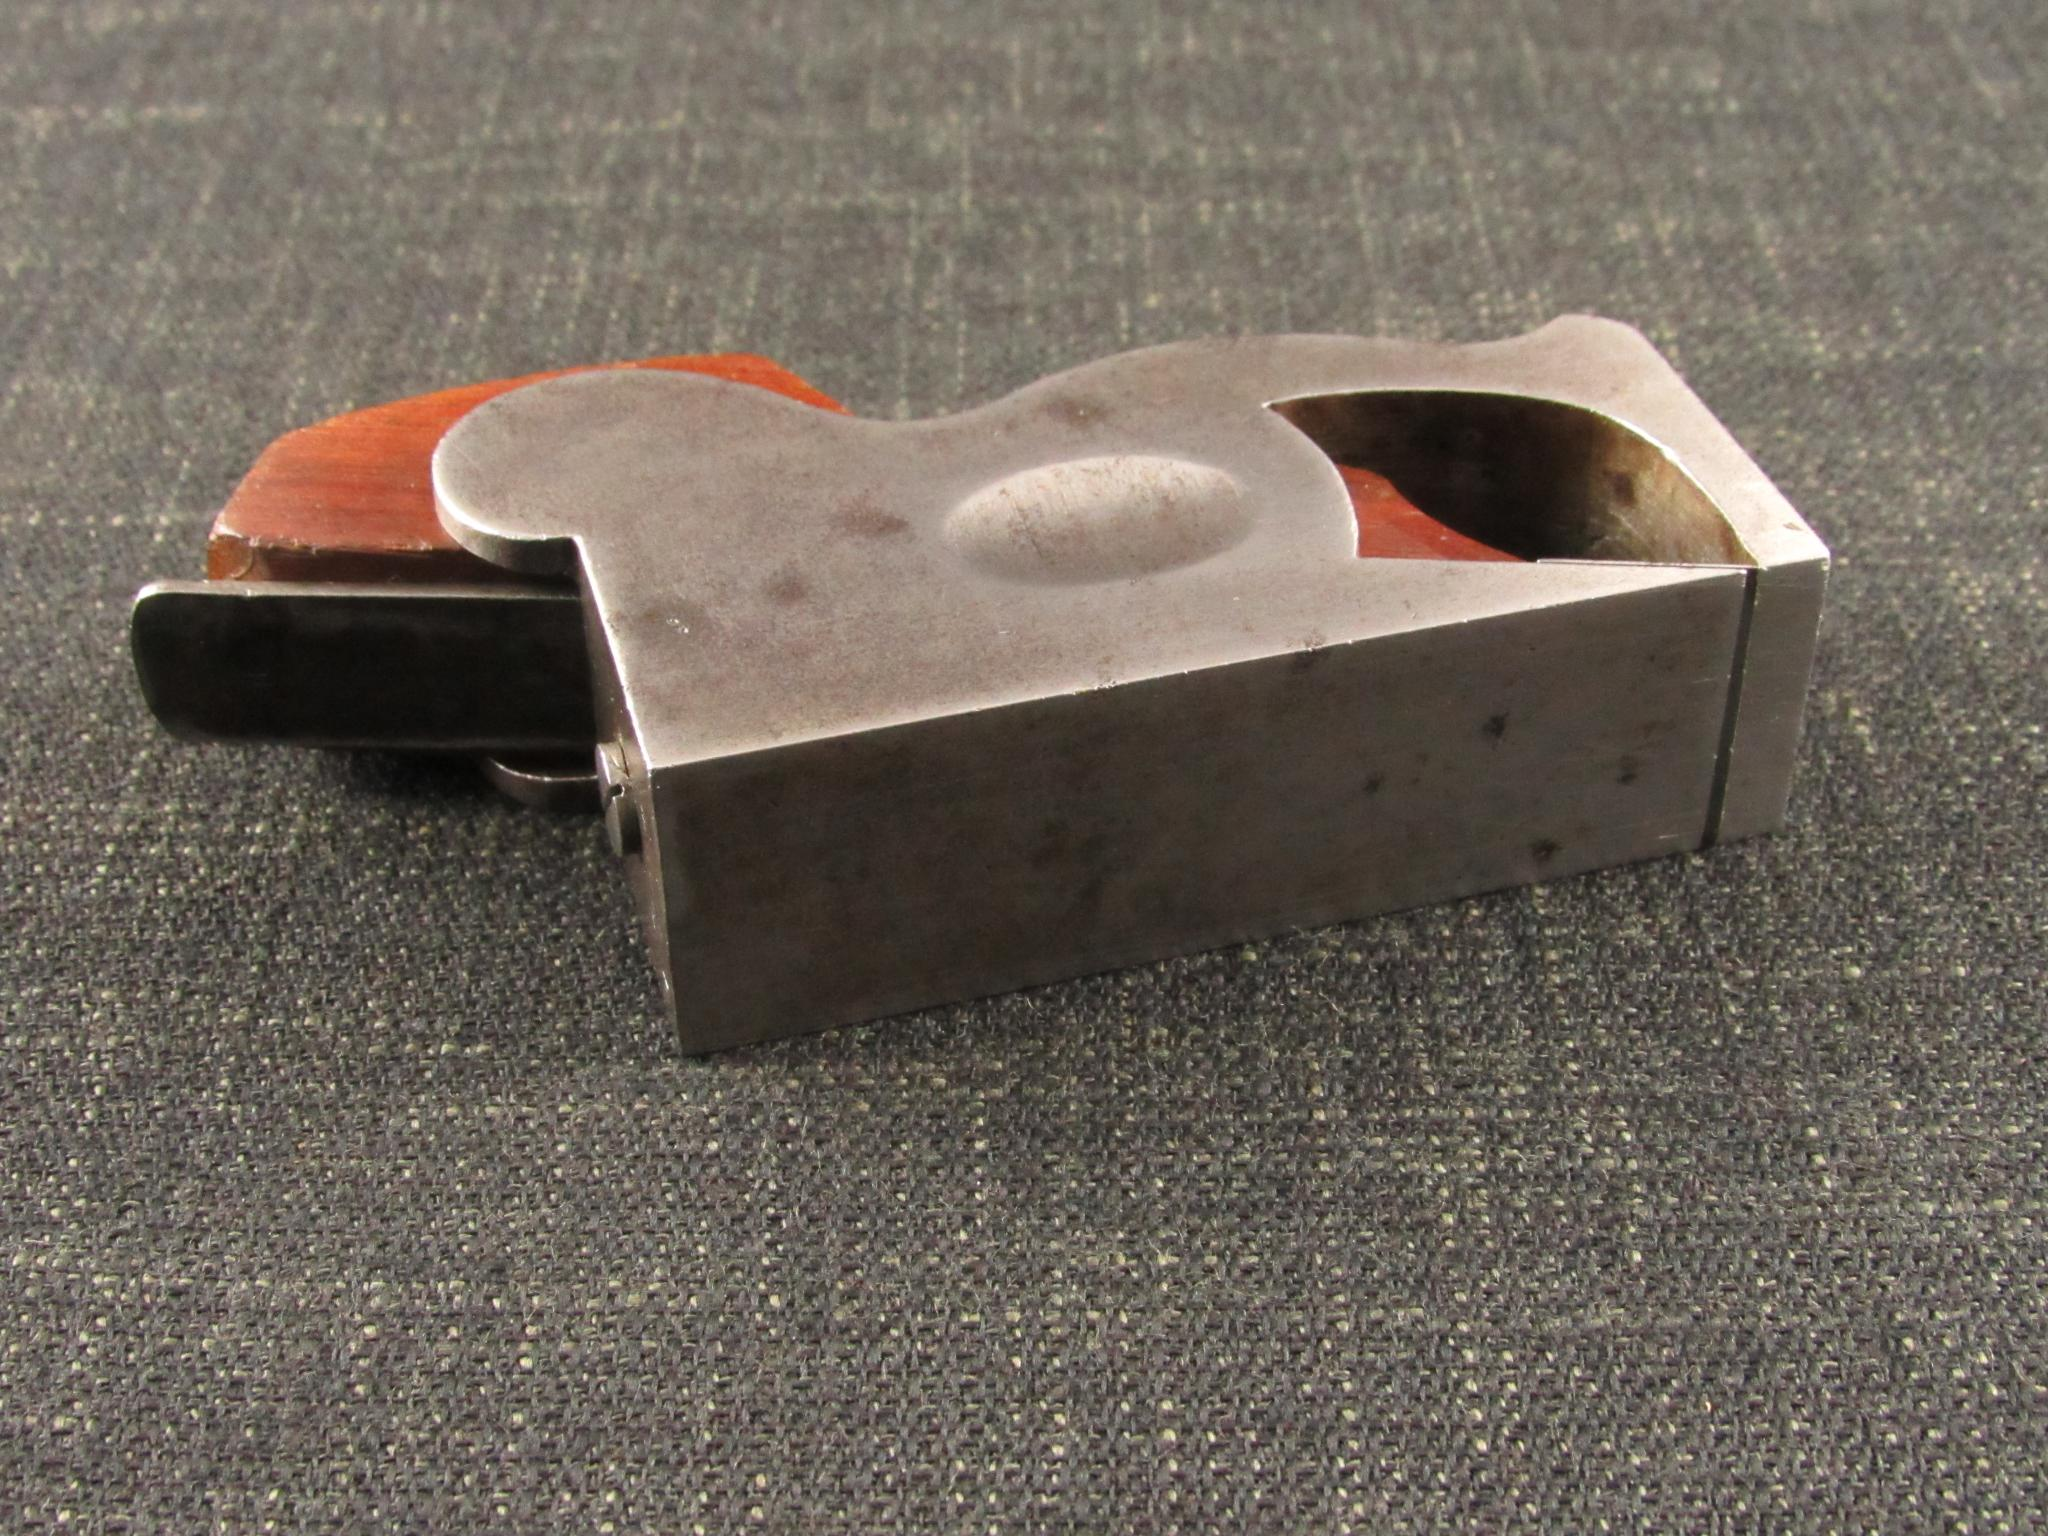 PRESTON Malleable Iron Bull Nose Plane - Square Nose No.1344L